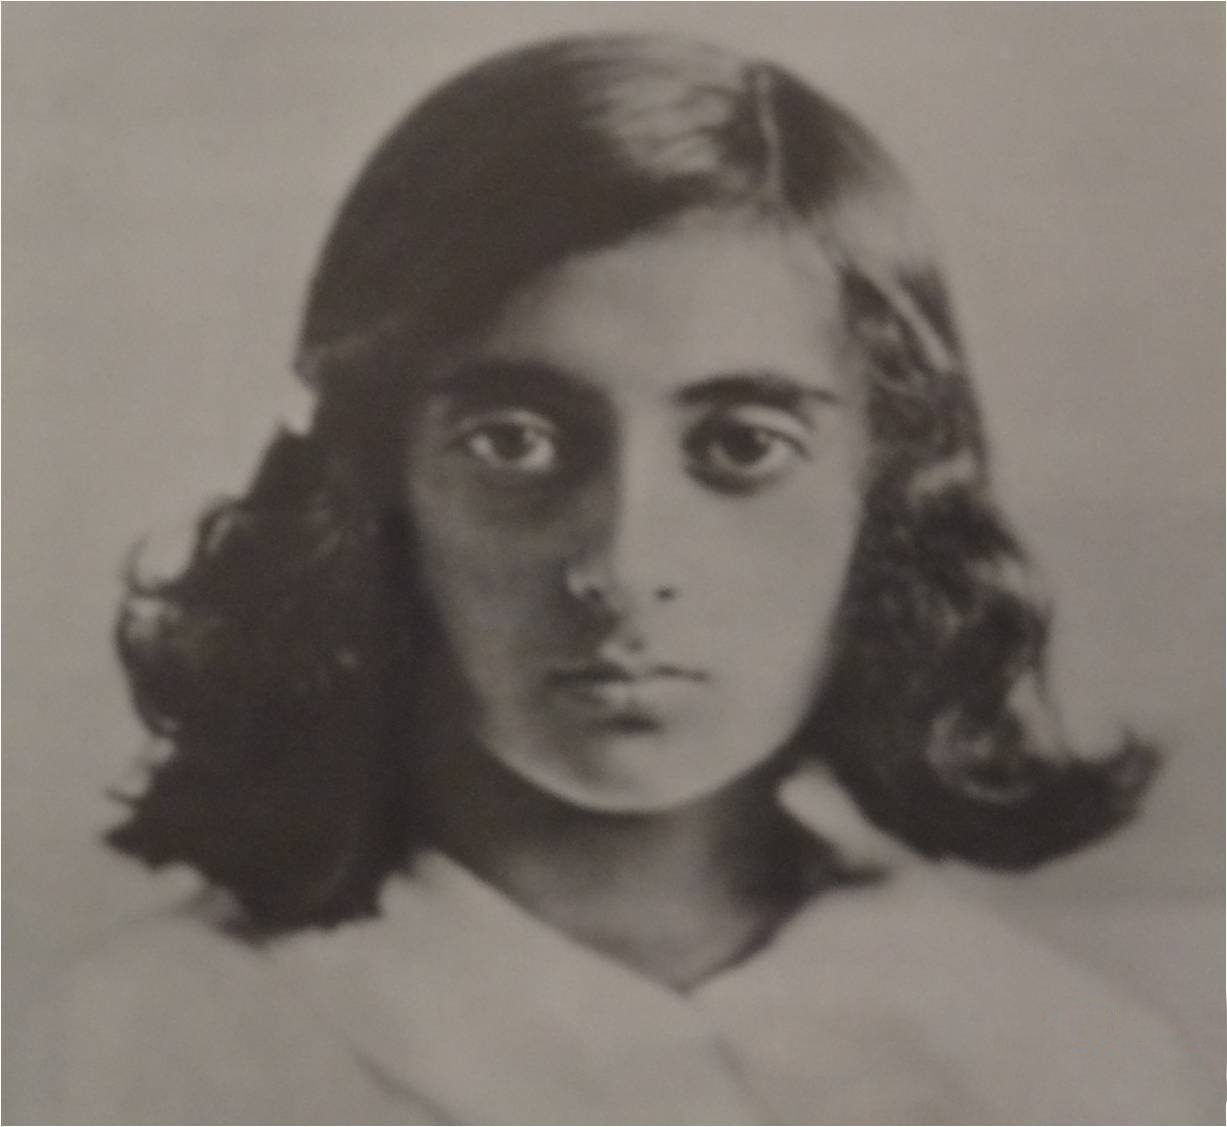 https://i0.wp.com/upload.wikimedia.org/wikipedia/commons/4/4e/IndiraGandhi-Young.jpg